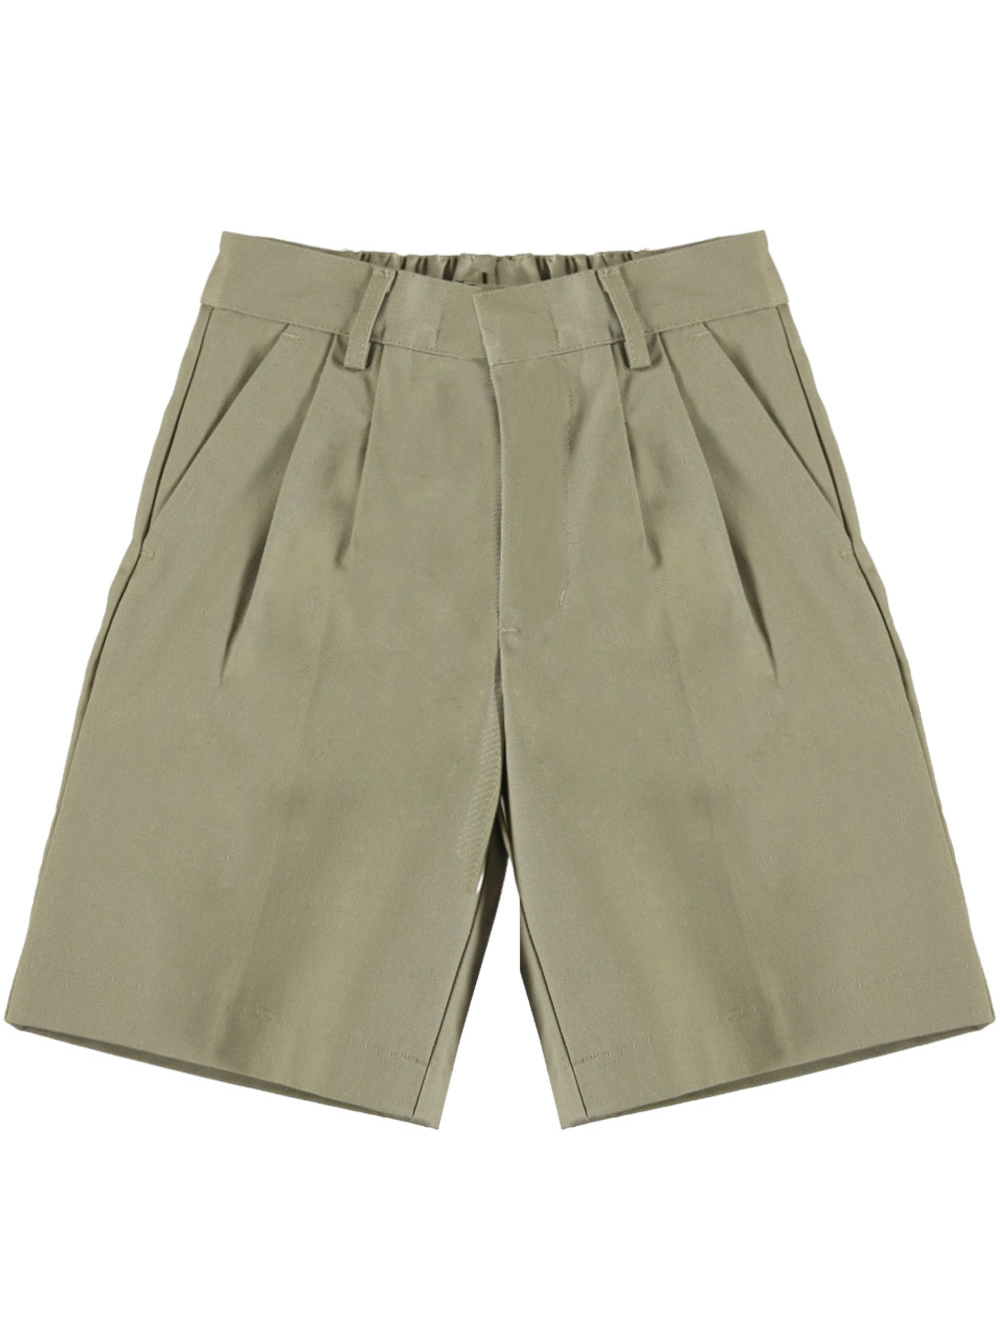 Universal Little Unisex' Basic Pleated Shorts (Sizes 2 - 7)